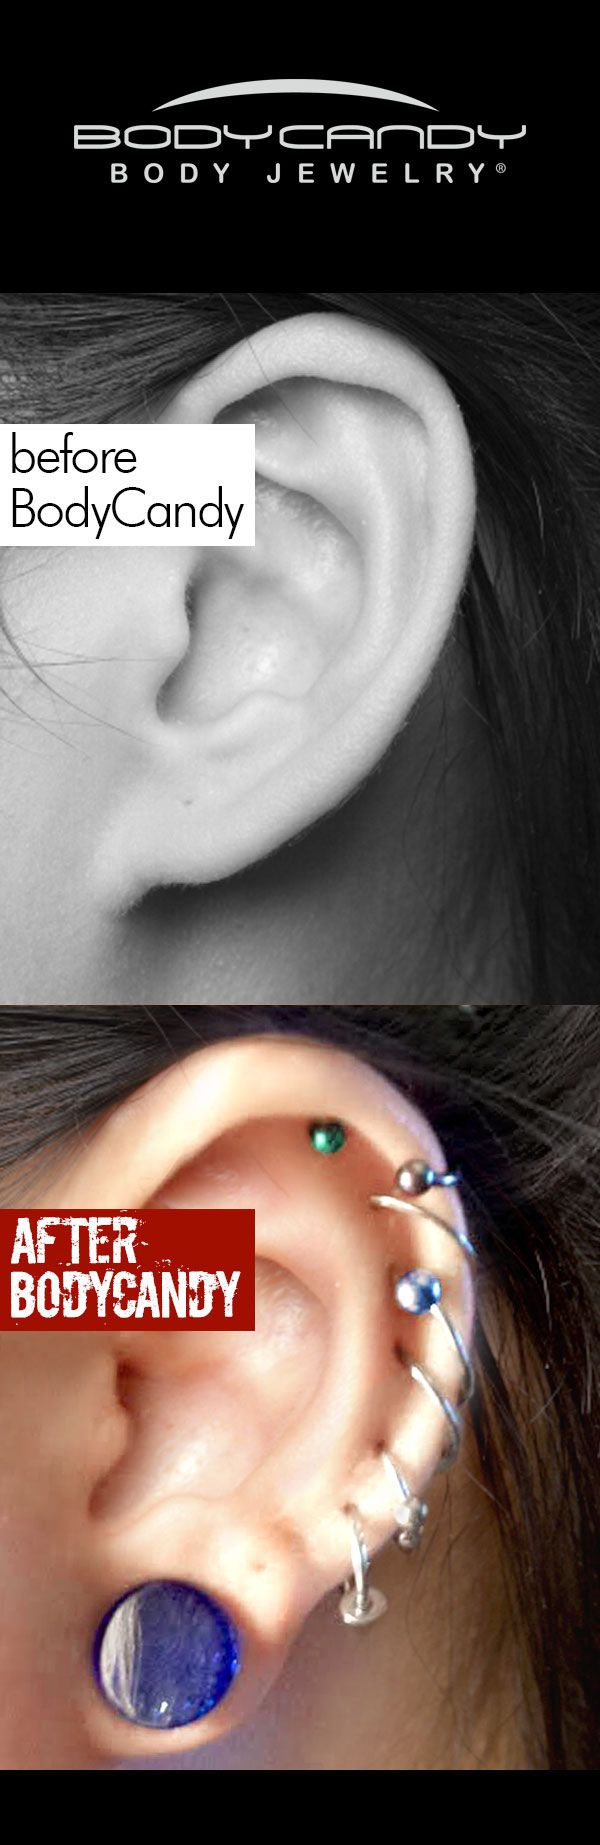 White nose piercing bump  Your sense of style is unique so stand out in a crowd Body jewelry